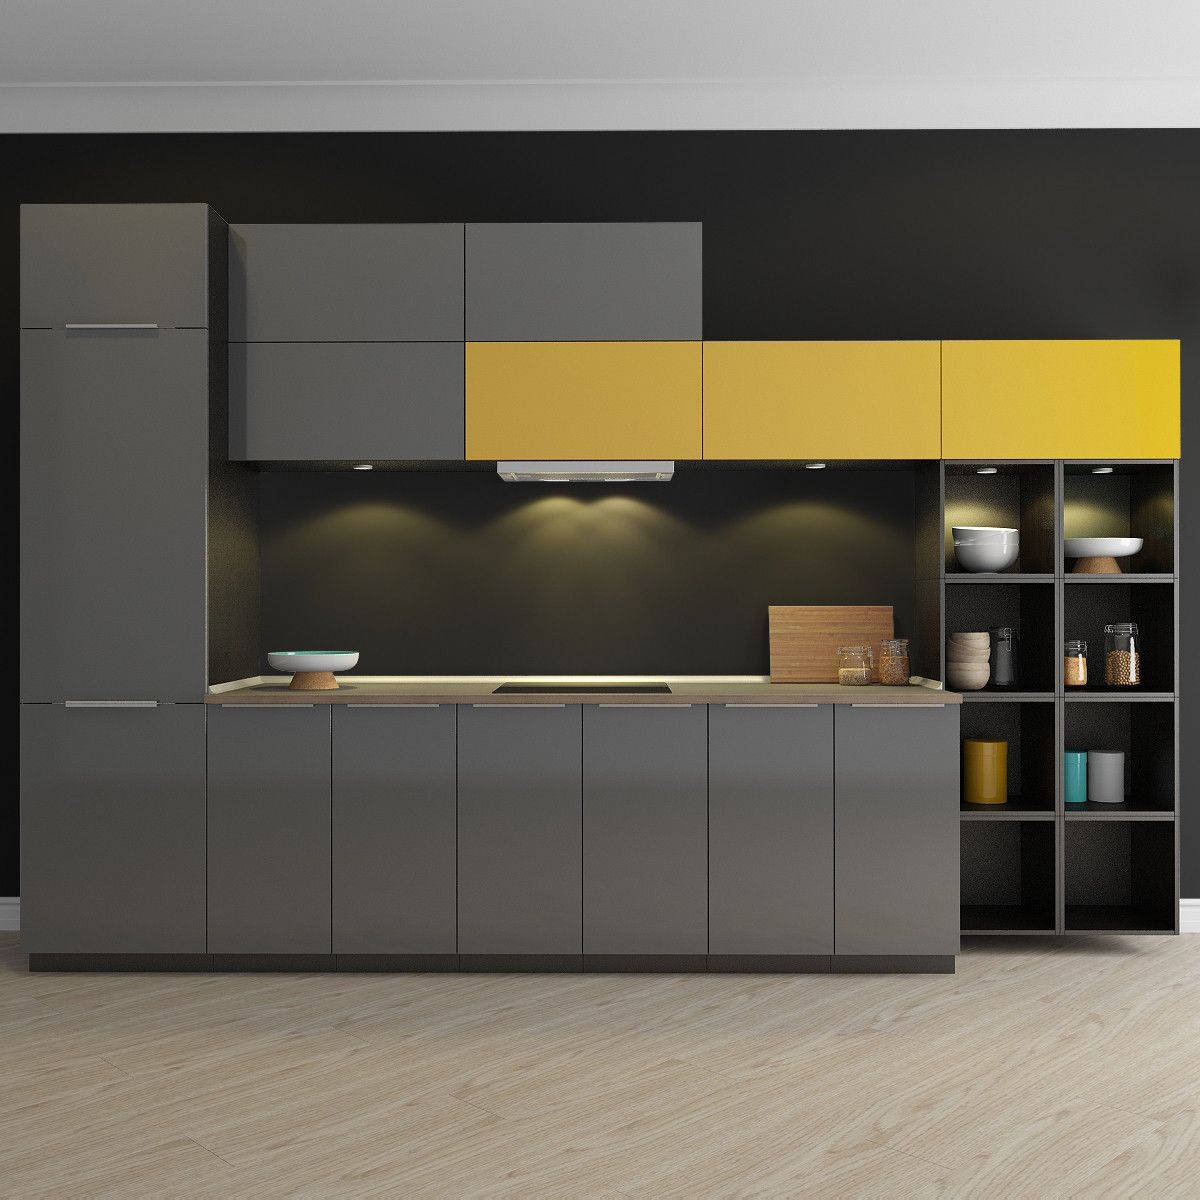 Kitchen Ringhult 3d Max 3d Model Kitchen Furniture Design Kitchen Room Design 3d Kitchen Design